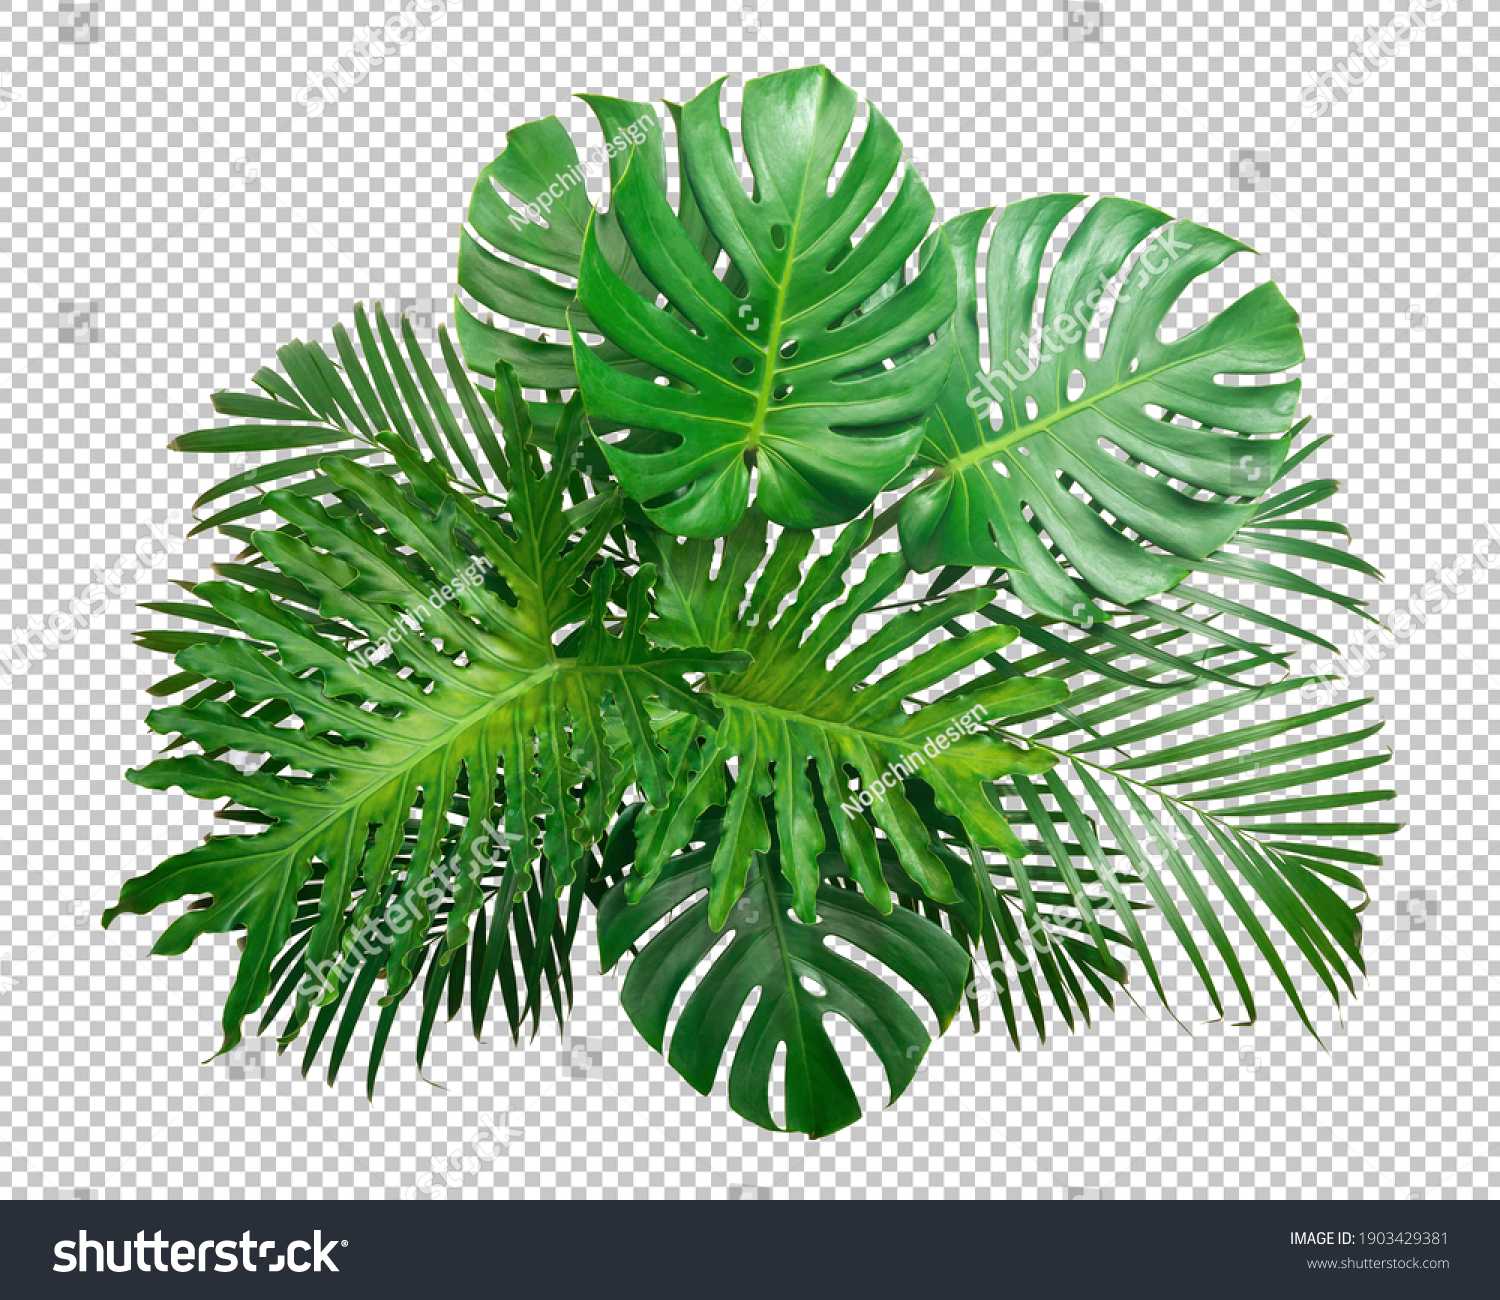 Bush Green Monstera leaf isolated transparency white background.Tropical leaves object clipping path #1903429381